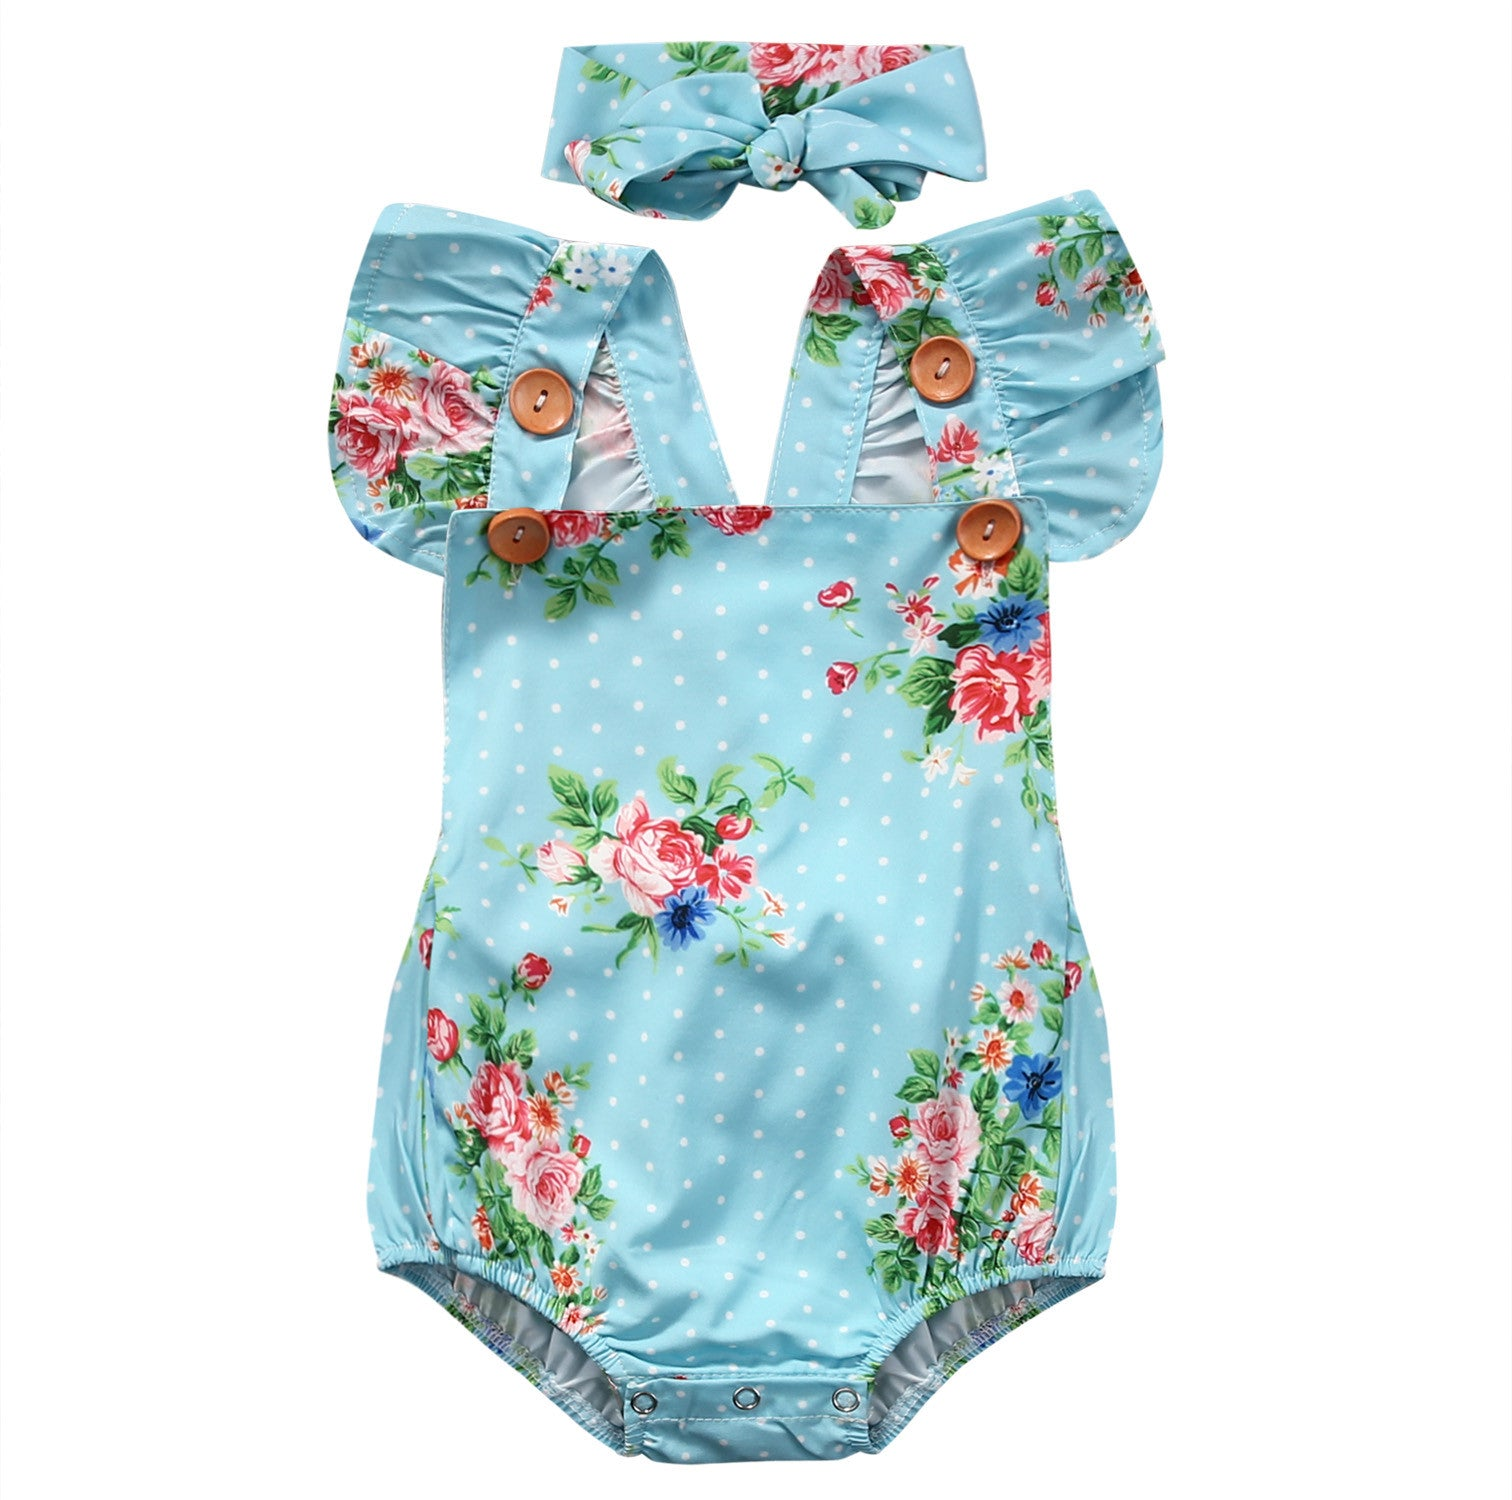 47c30aed72bf Newborn Floral Romper – Baby-Blends By MG